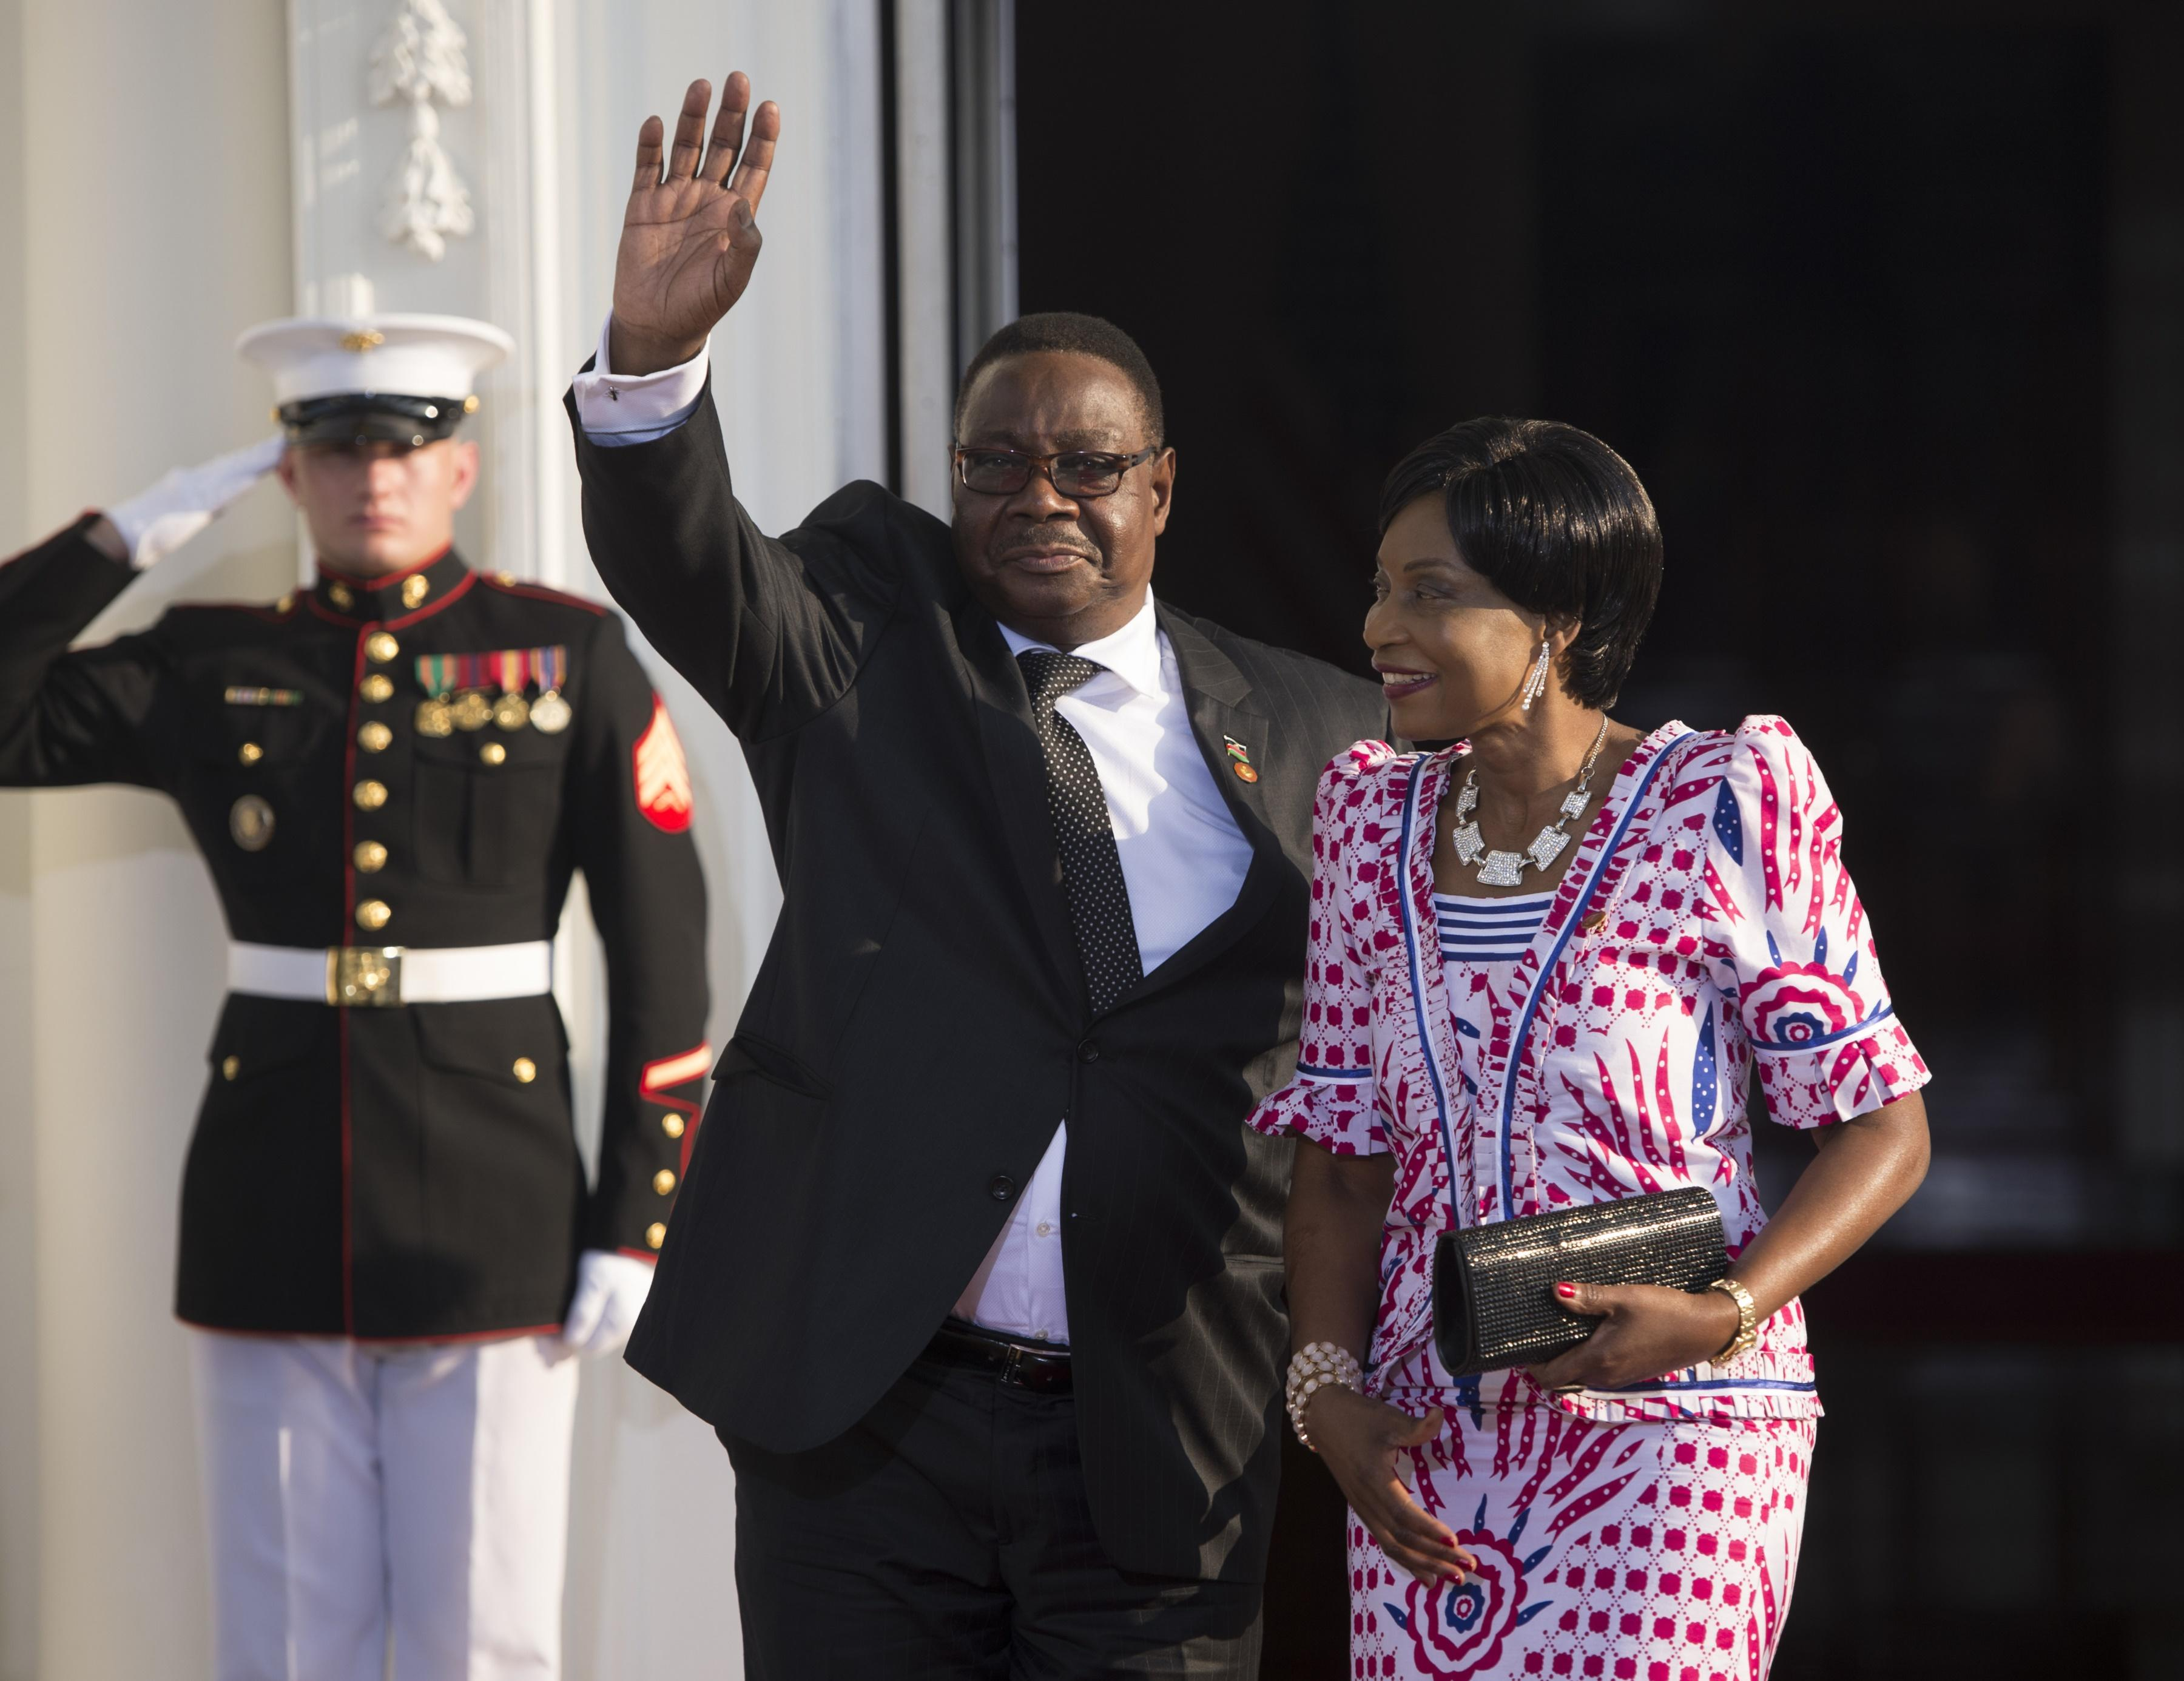 Malawi President Peter Mutharika, pictured during the US Africa Leaders Summit on August 5, 2014 in Washington, DC